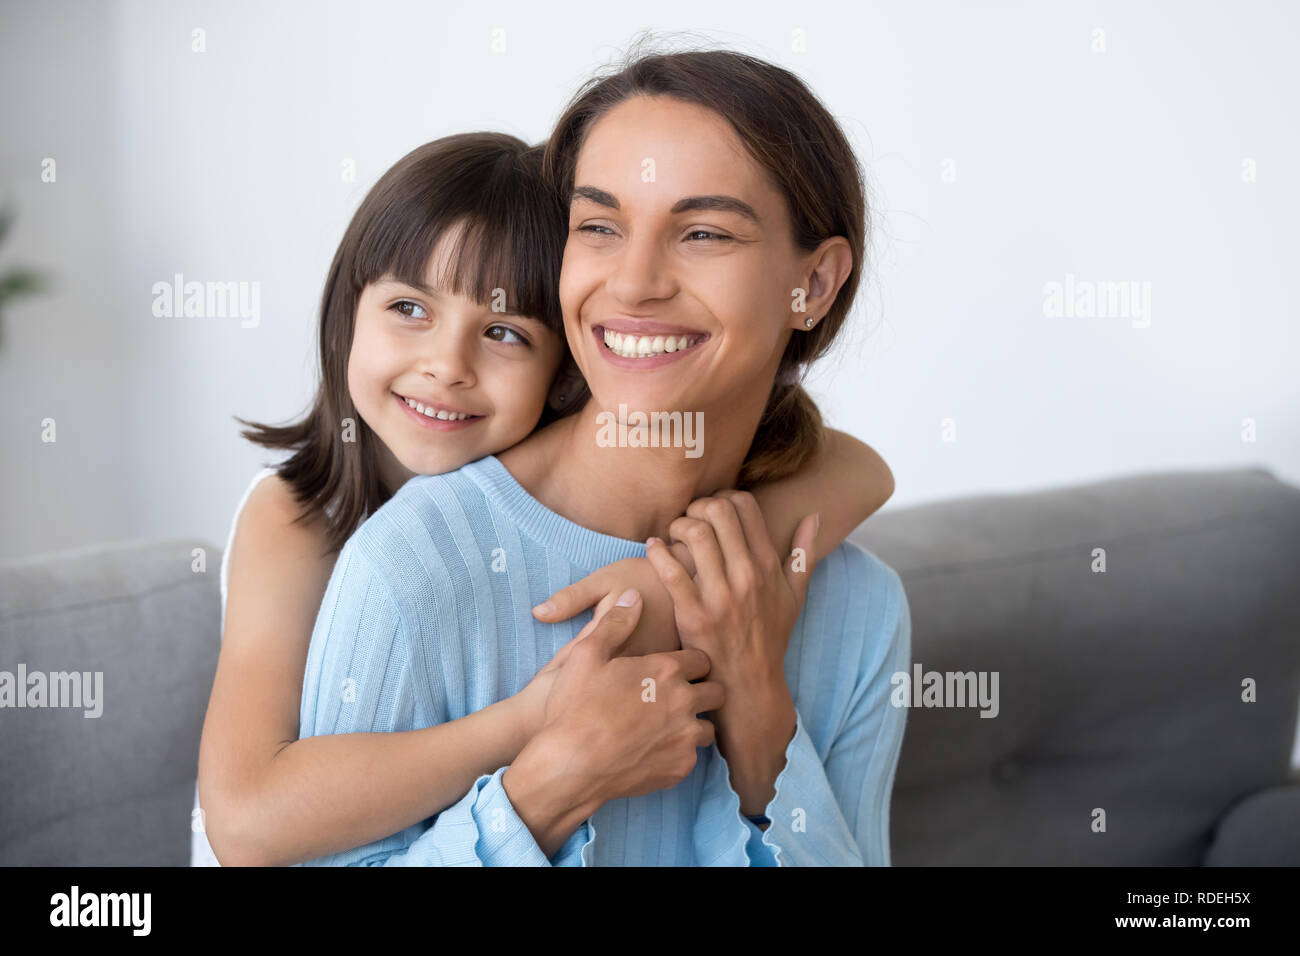 Smiling mom and cute kid daughter embracing looking into future - Stock Image